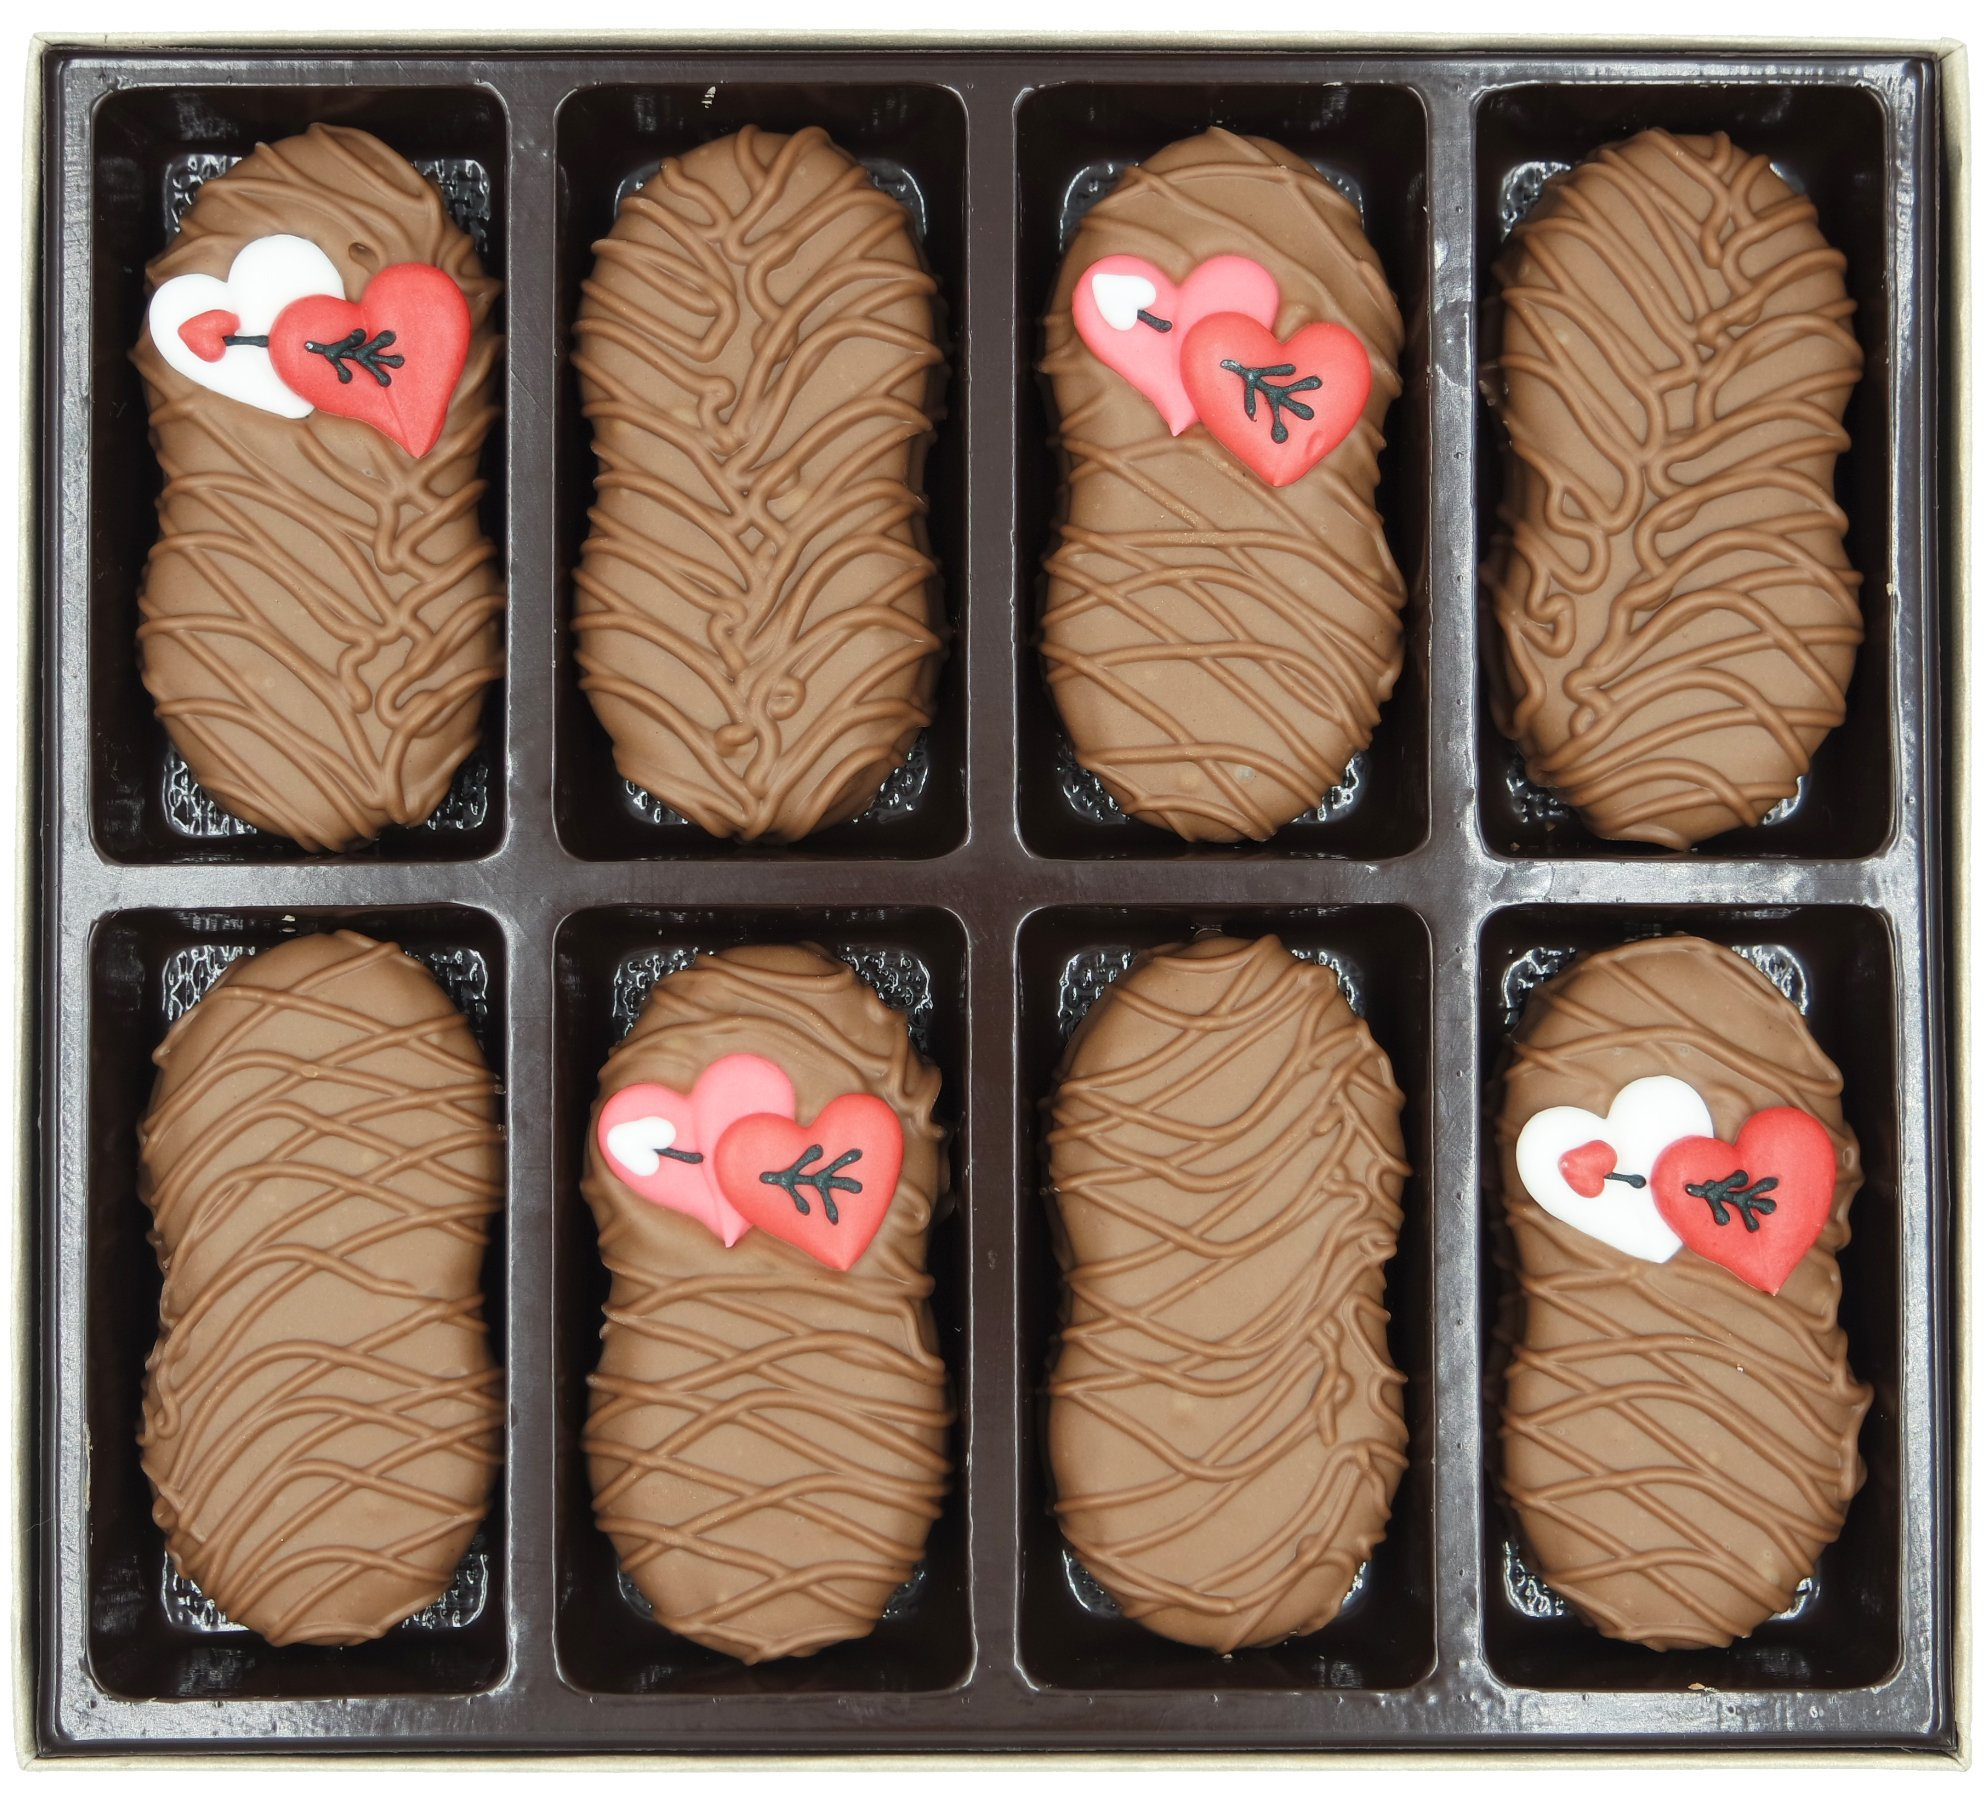 Philadelphia Candies Milk Chocolate Covered Nutter Butter Cookies Valentines Day Heart With Arrows Gift Net